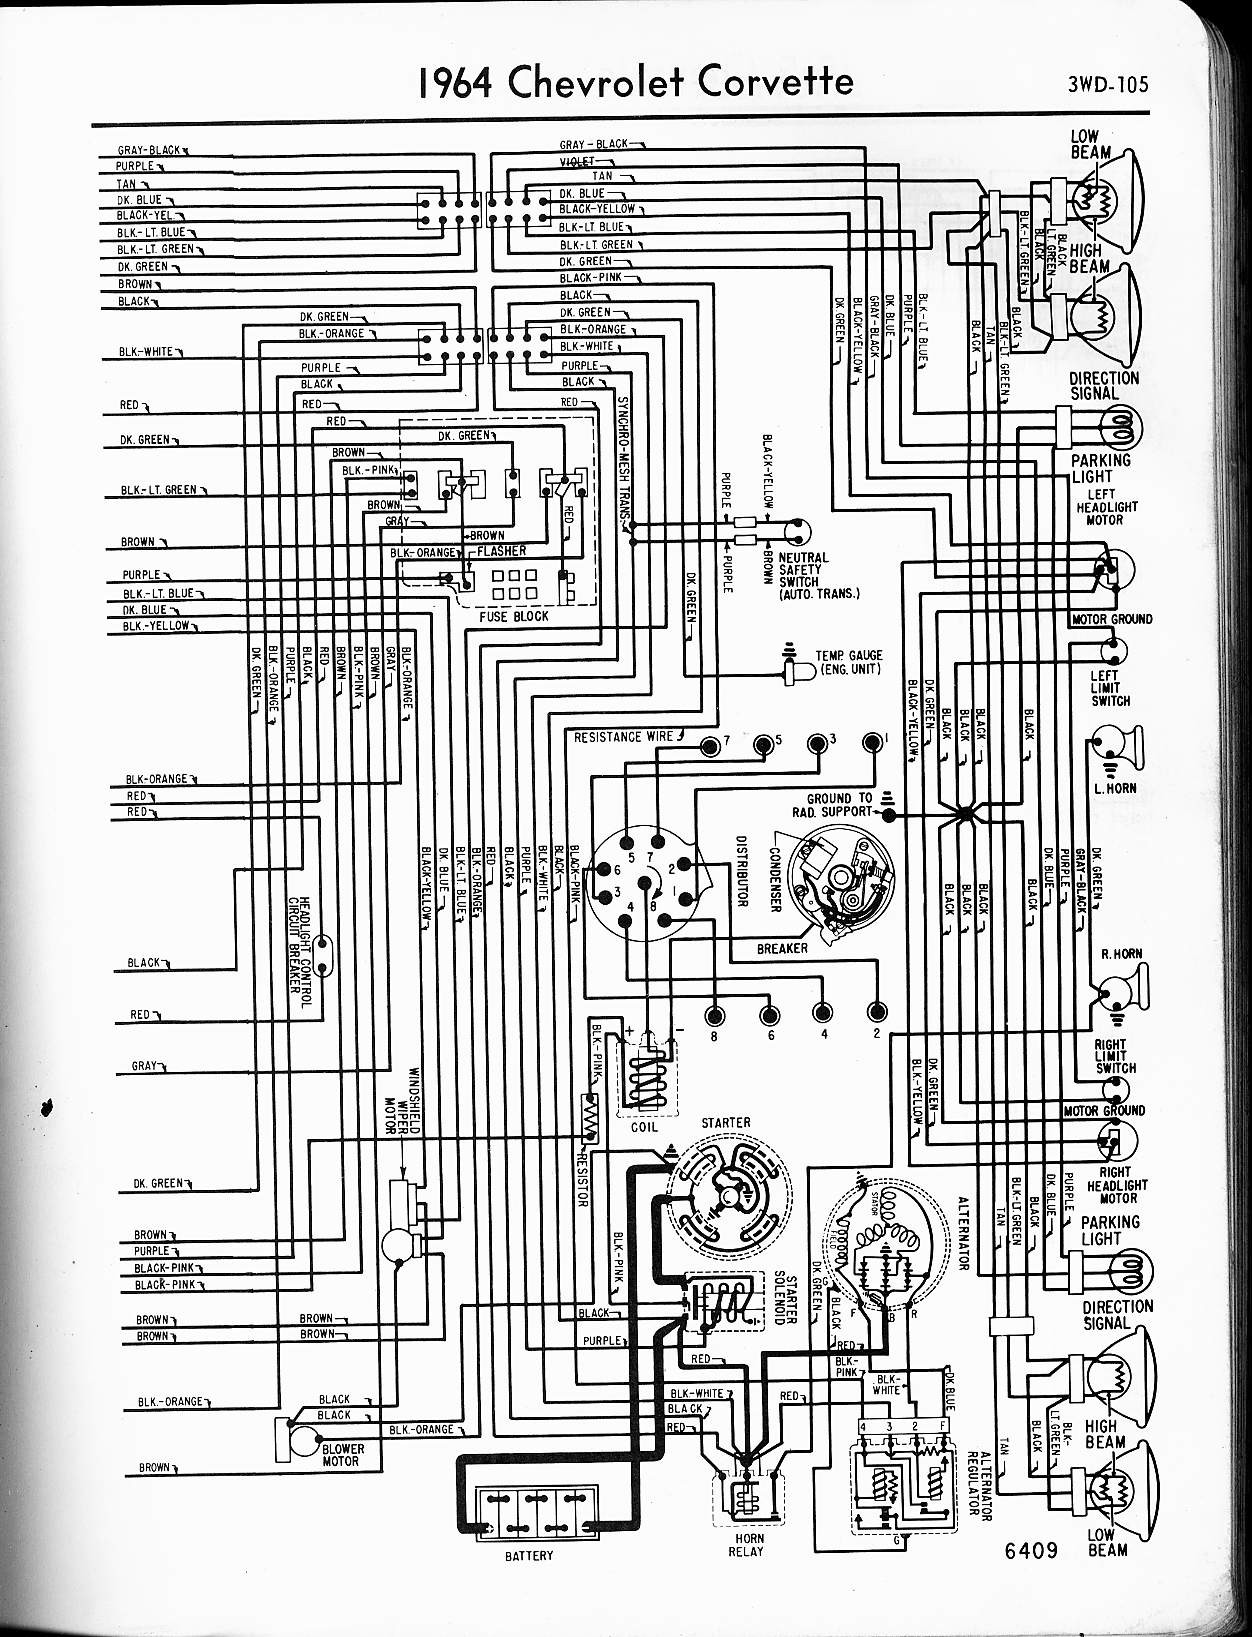 2000 Daewoo Nubira Radio Wiring Diagram Free Download Wiring Diagram